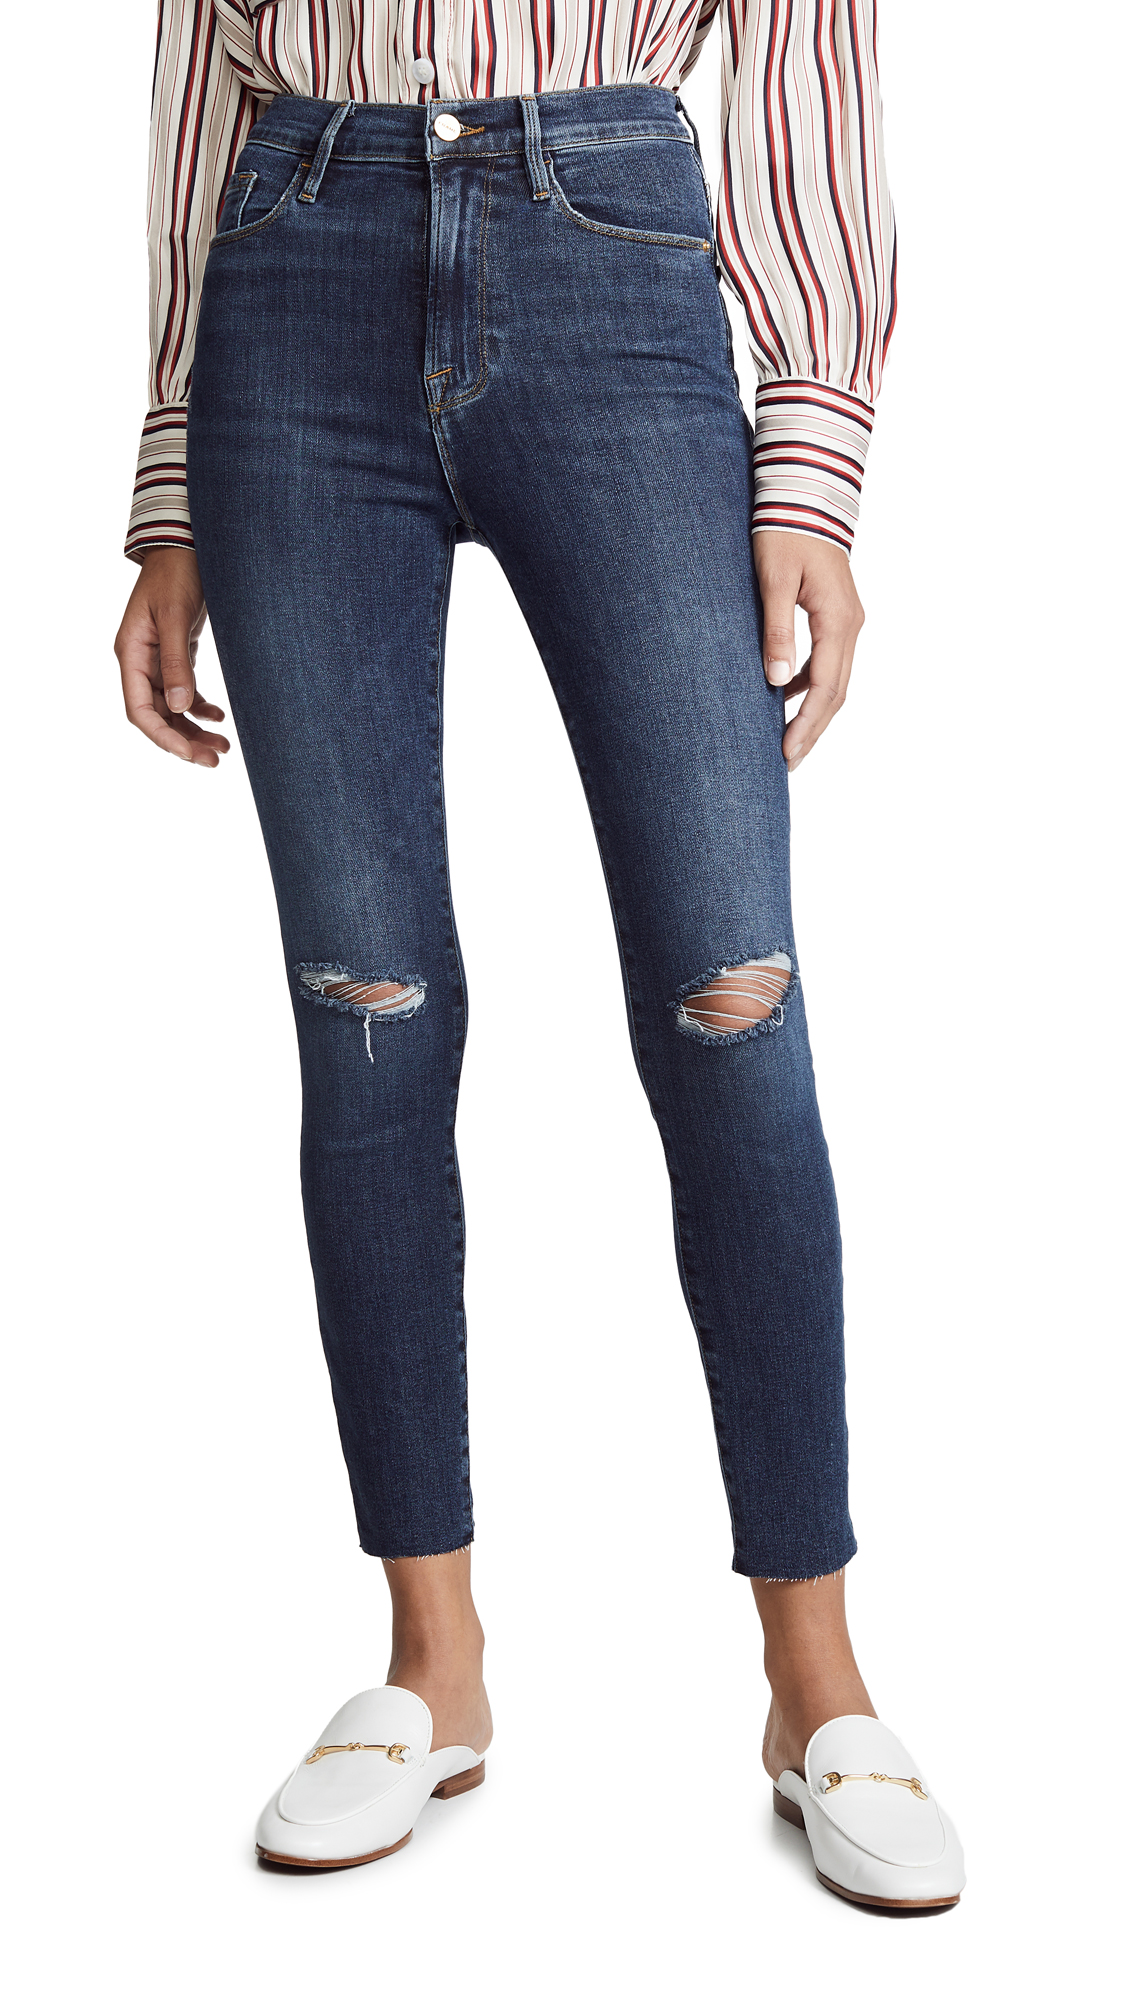 FRAME Ali High Rise Skinny Cigarette Raw Jeans - Brokedown Place